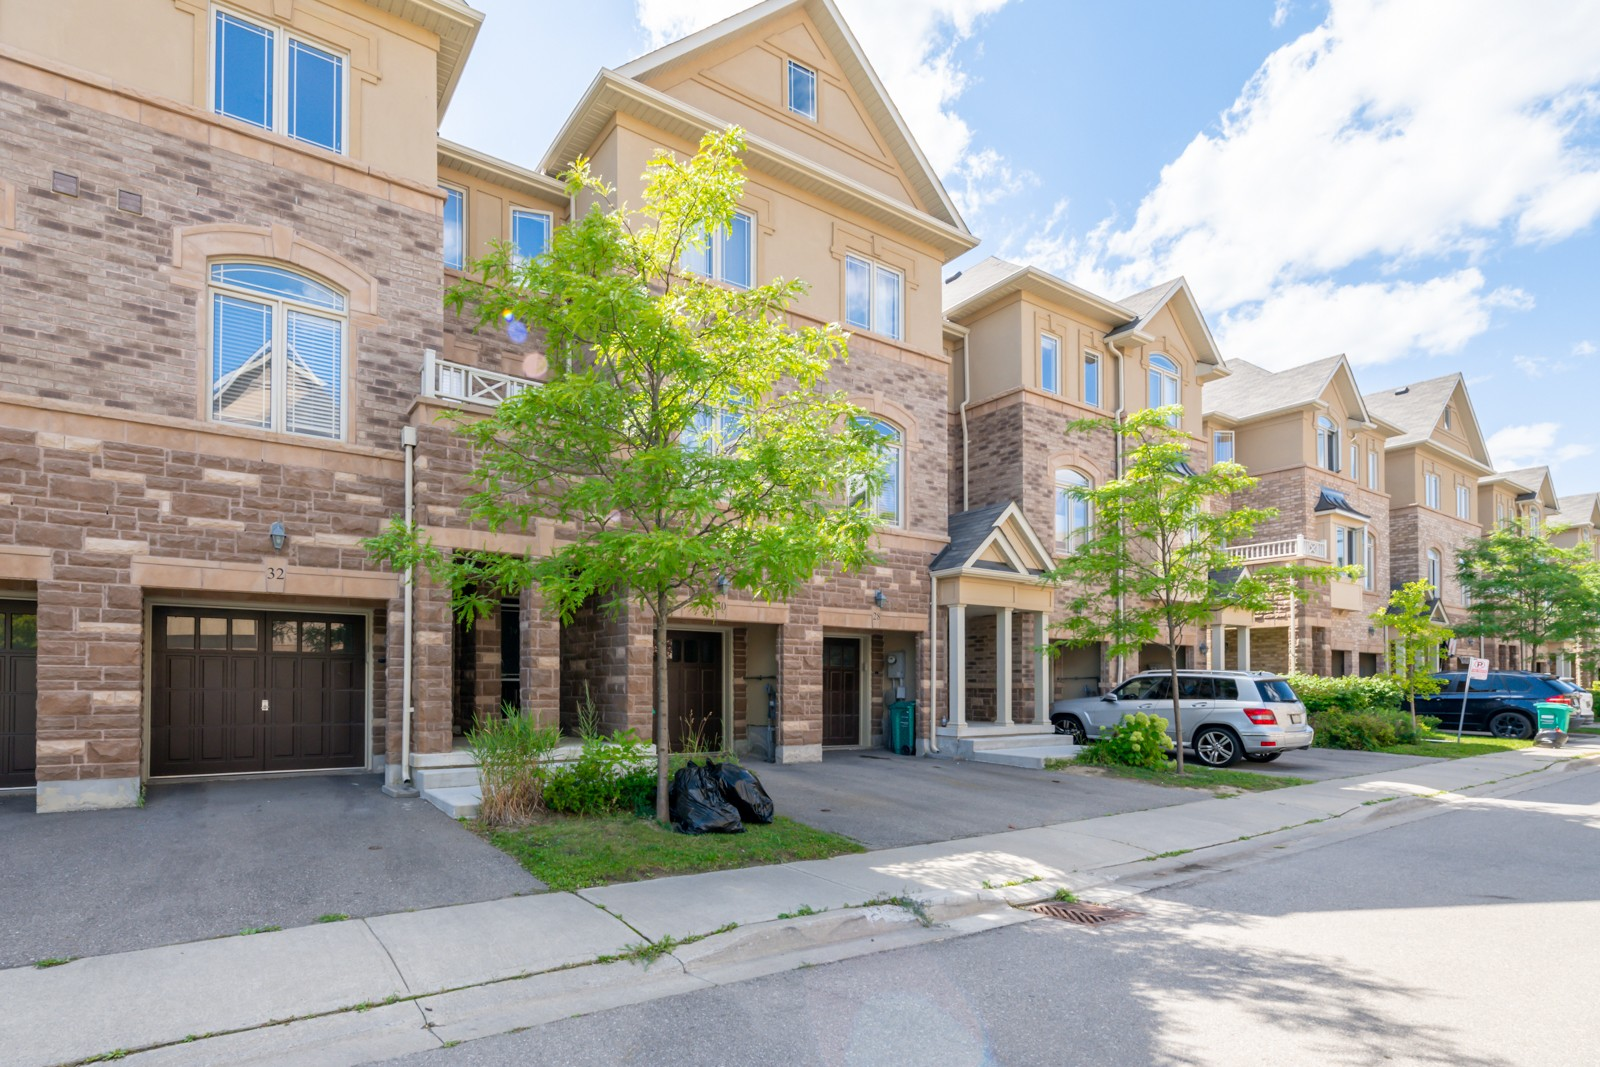 6625 Falconer Drive Townhouses at 6625 Falconer Dr, Mississauga 1